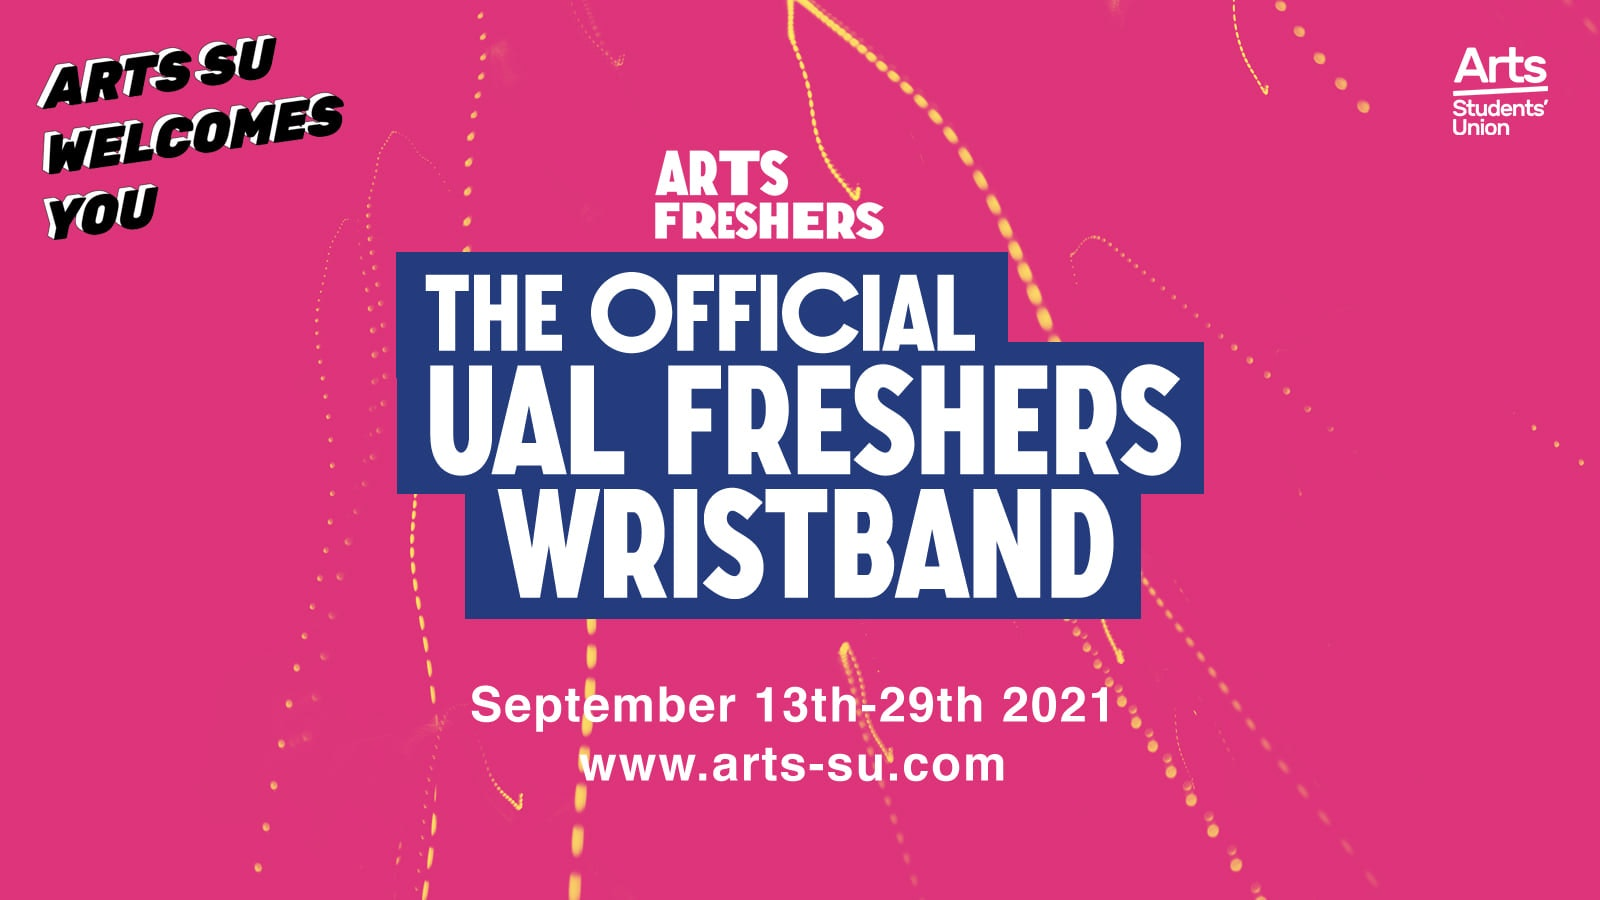 Arts Freshers 2021 Official Events Wristband